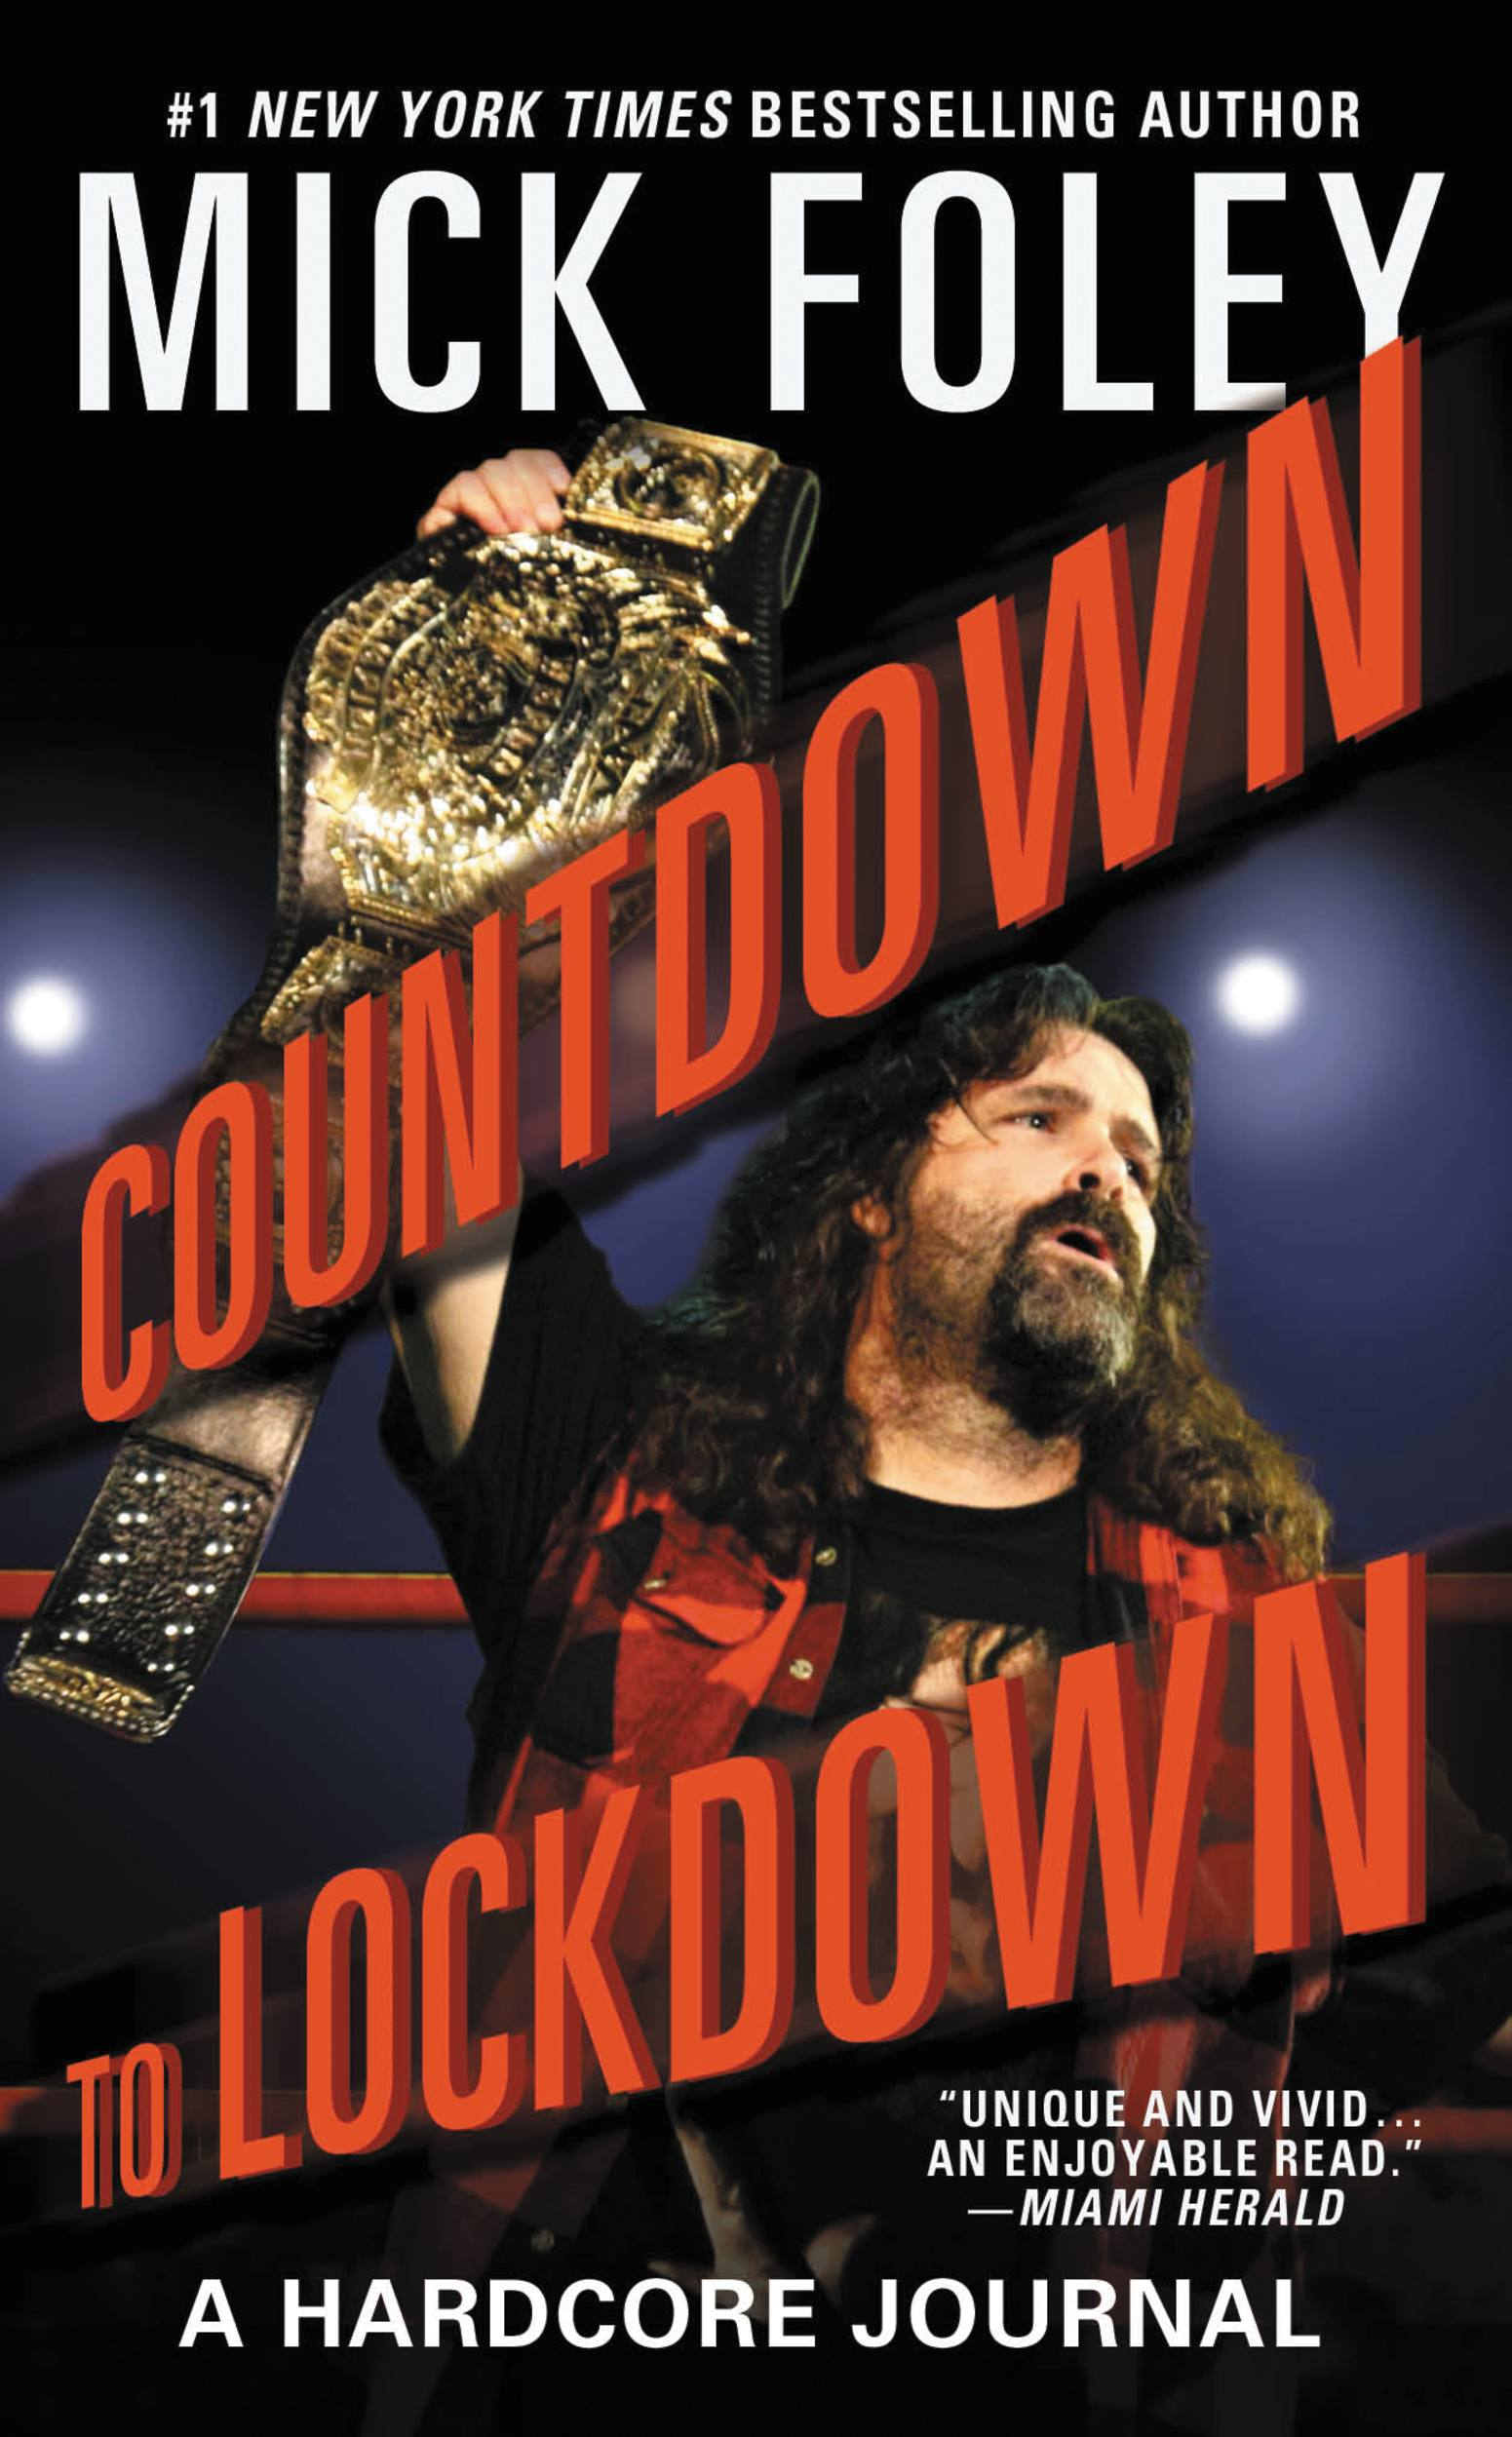 Countdown to Lockdown By: Mick Foley